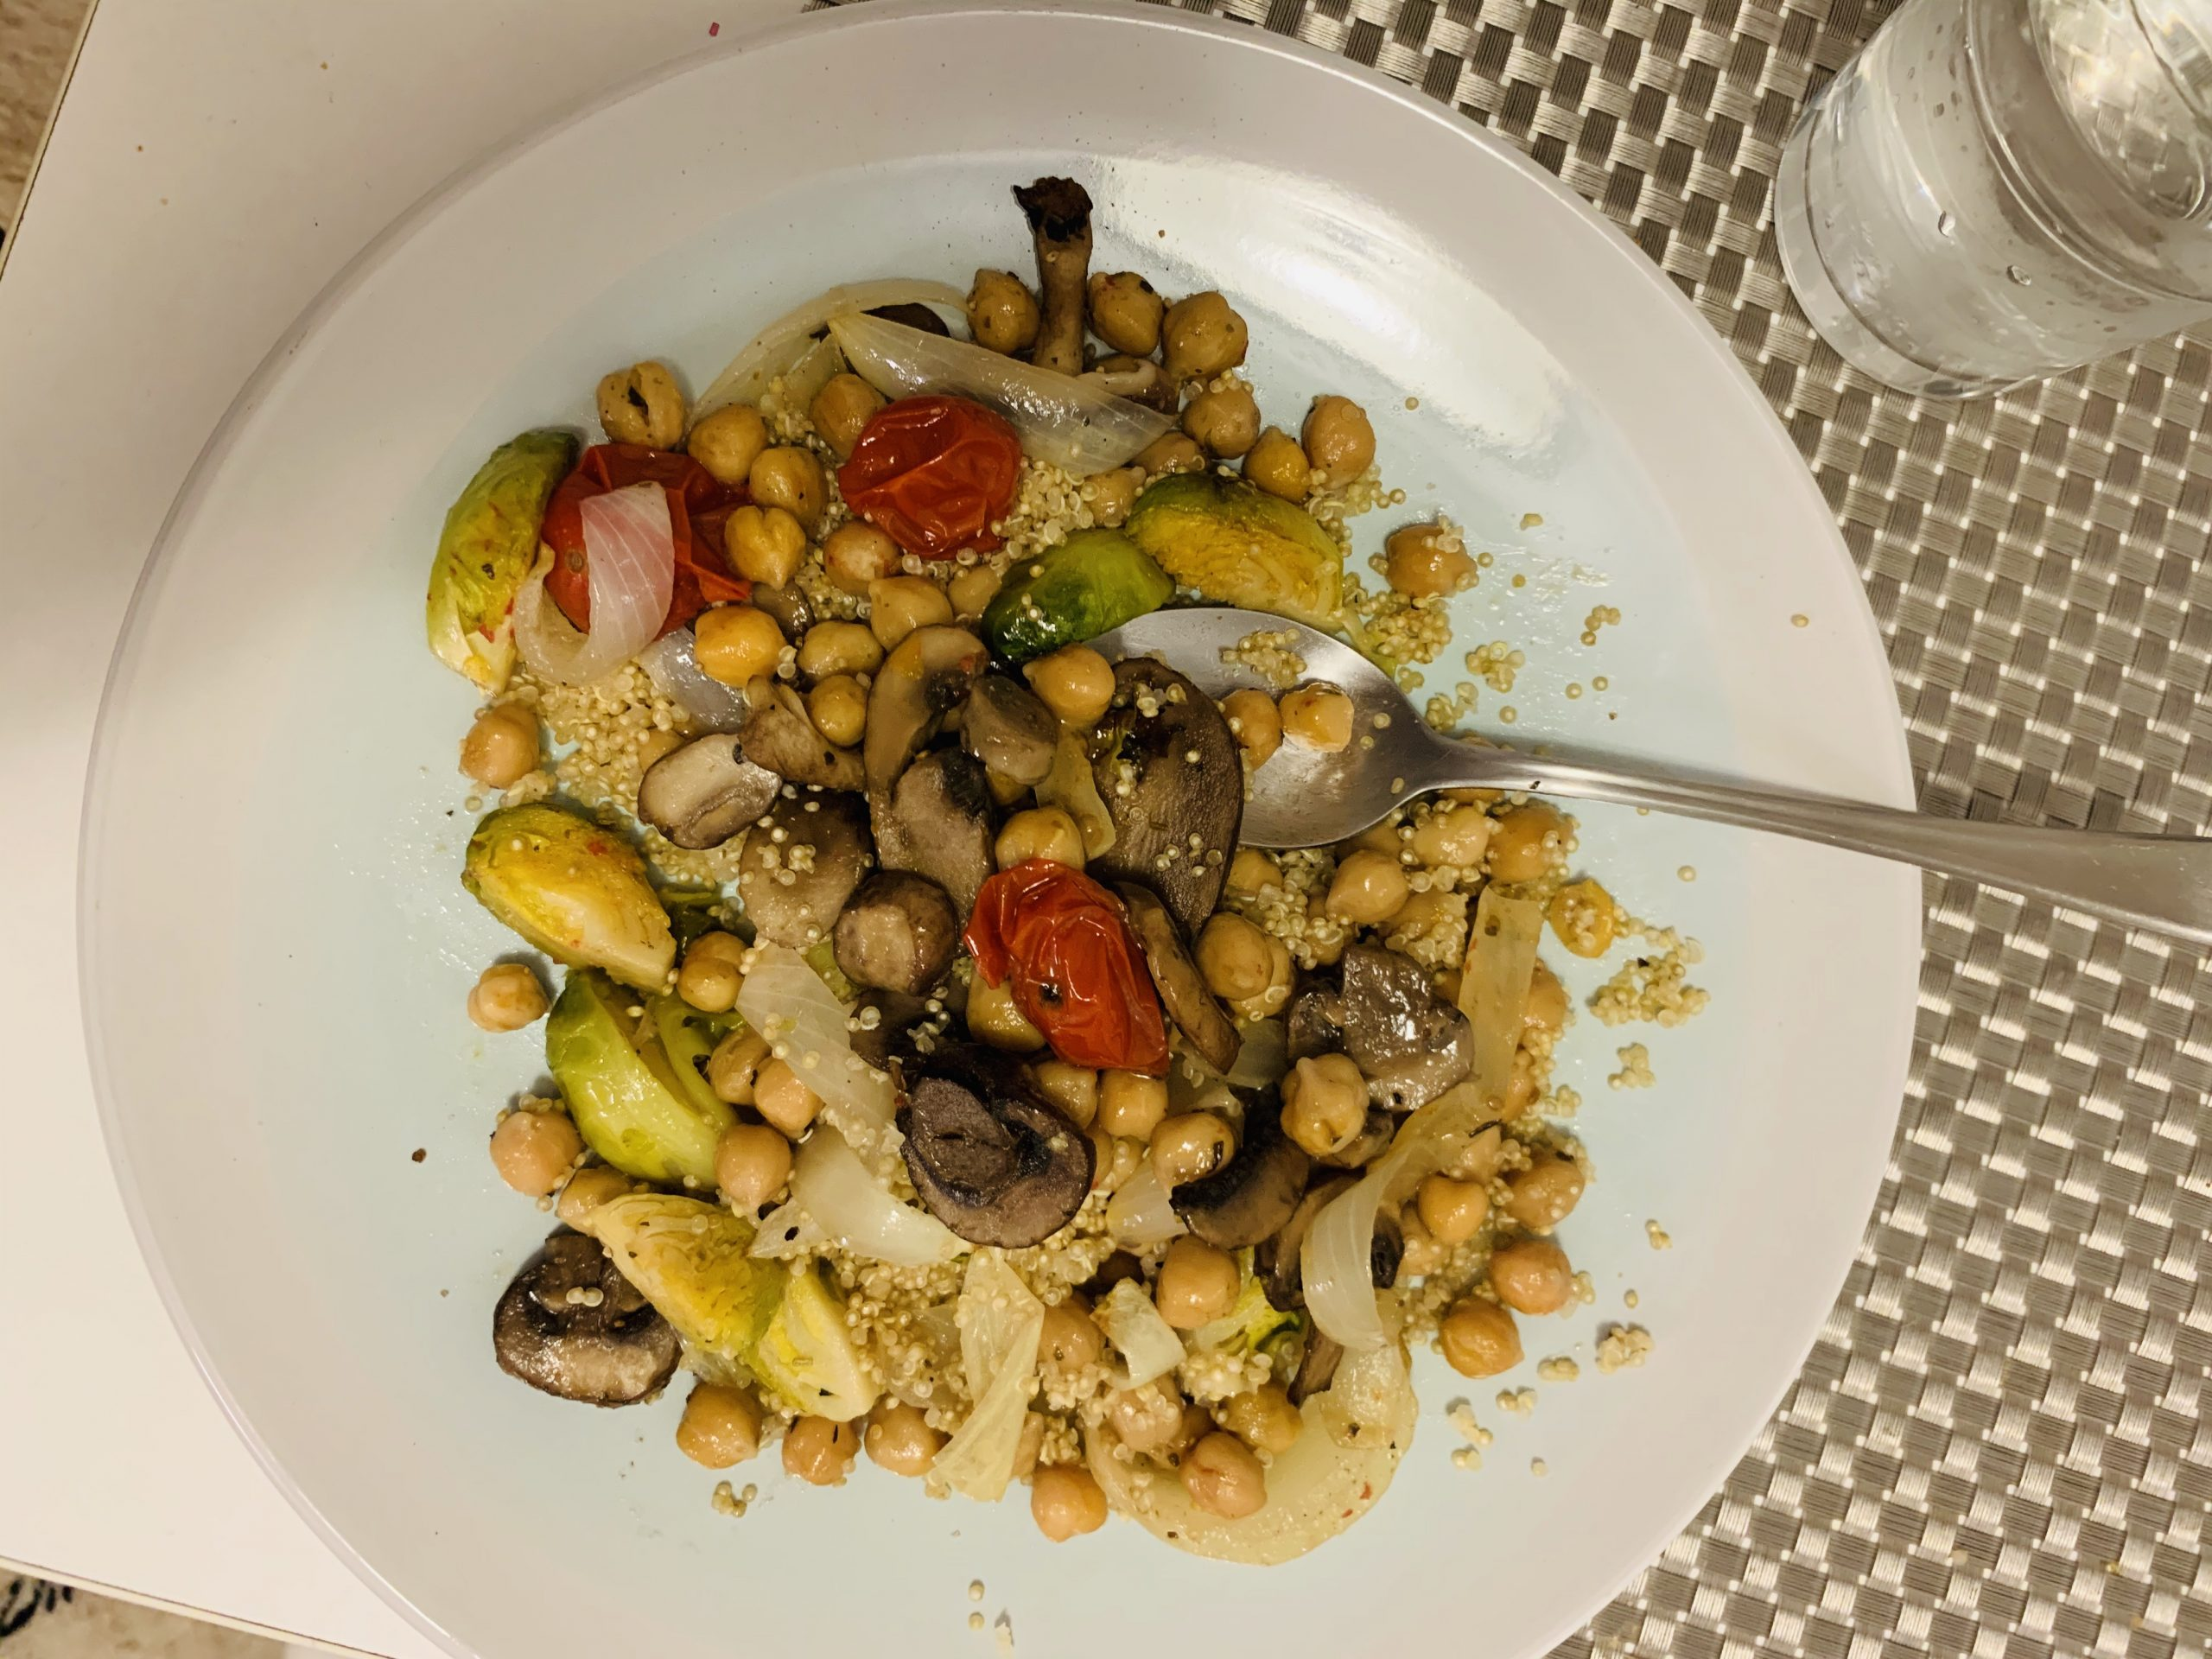 roasted tomatoes, mushrooms, onions and quinoa on a plate